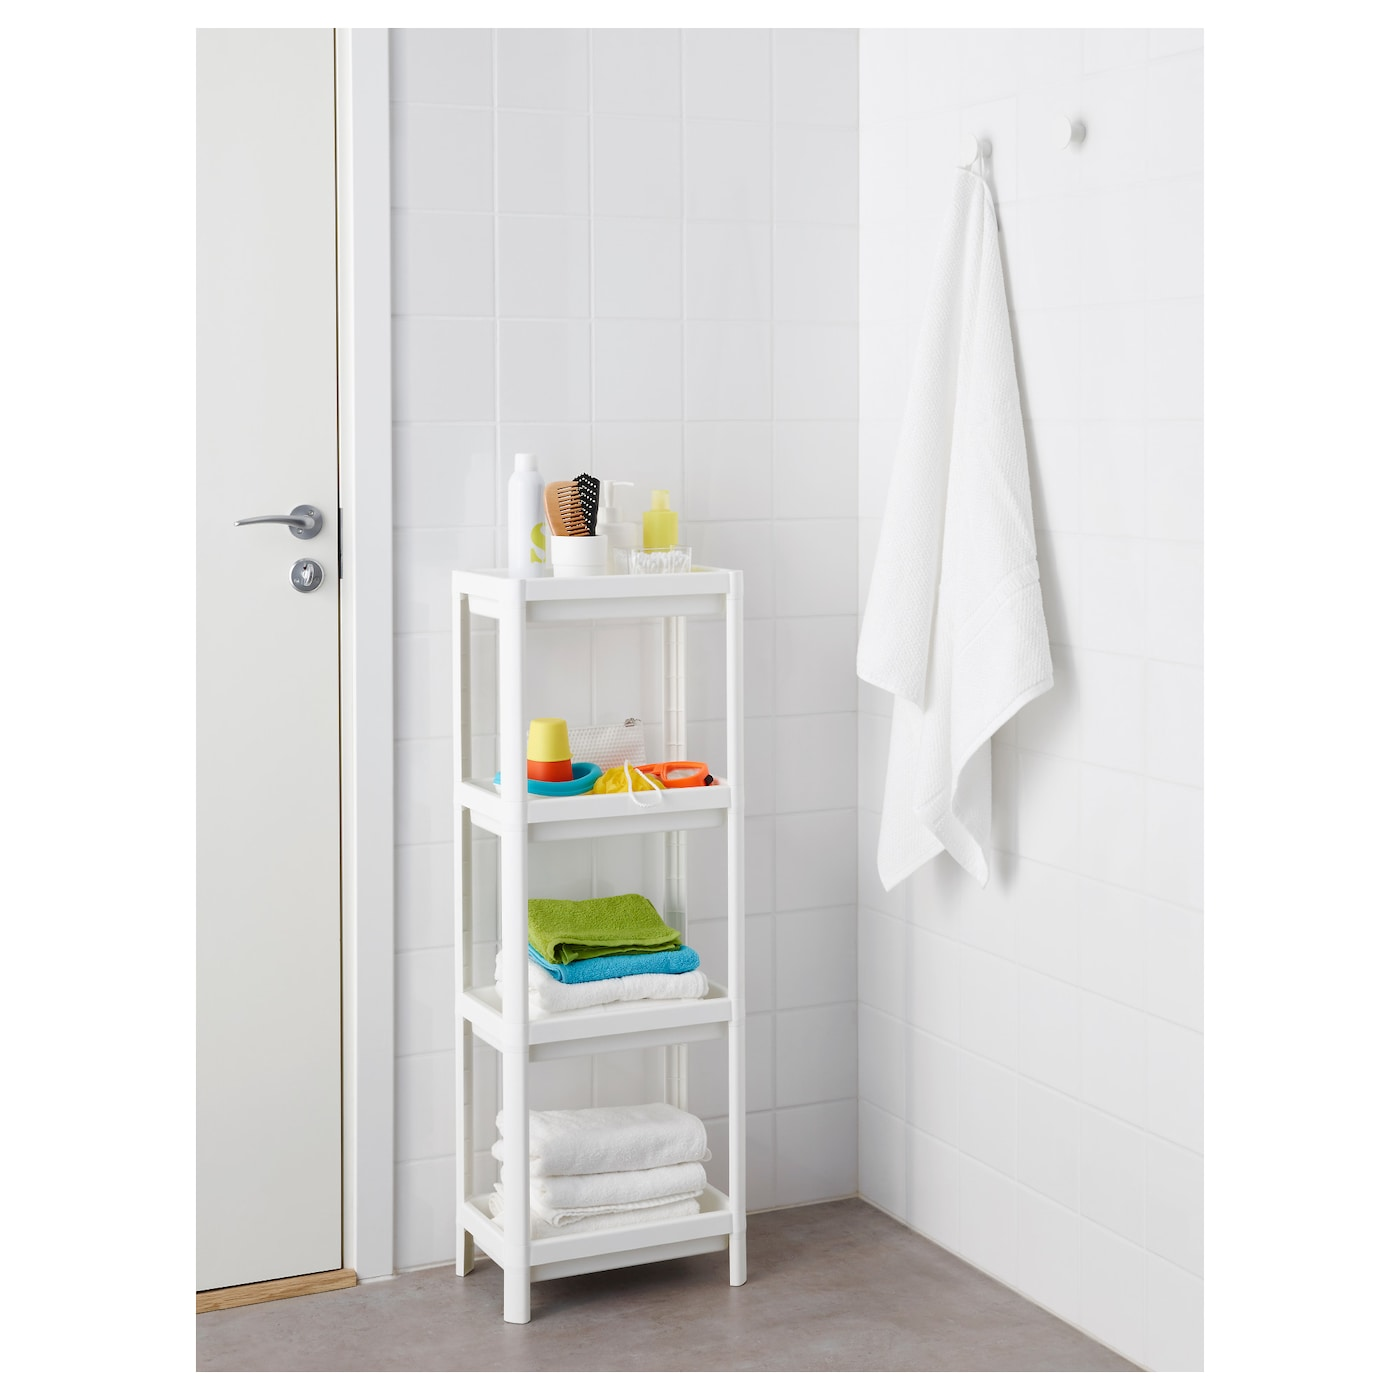 IKEA VESKEN shelf unit Perfect in a small bathroom.